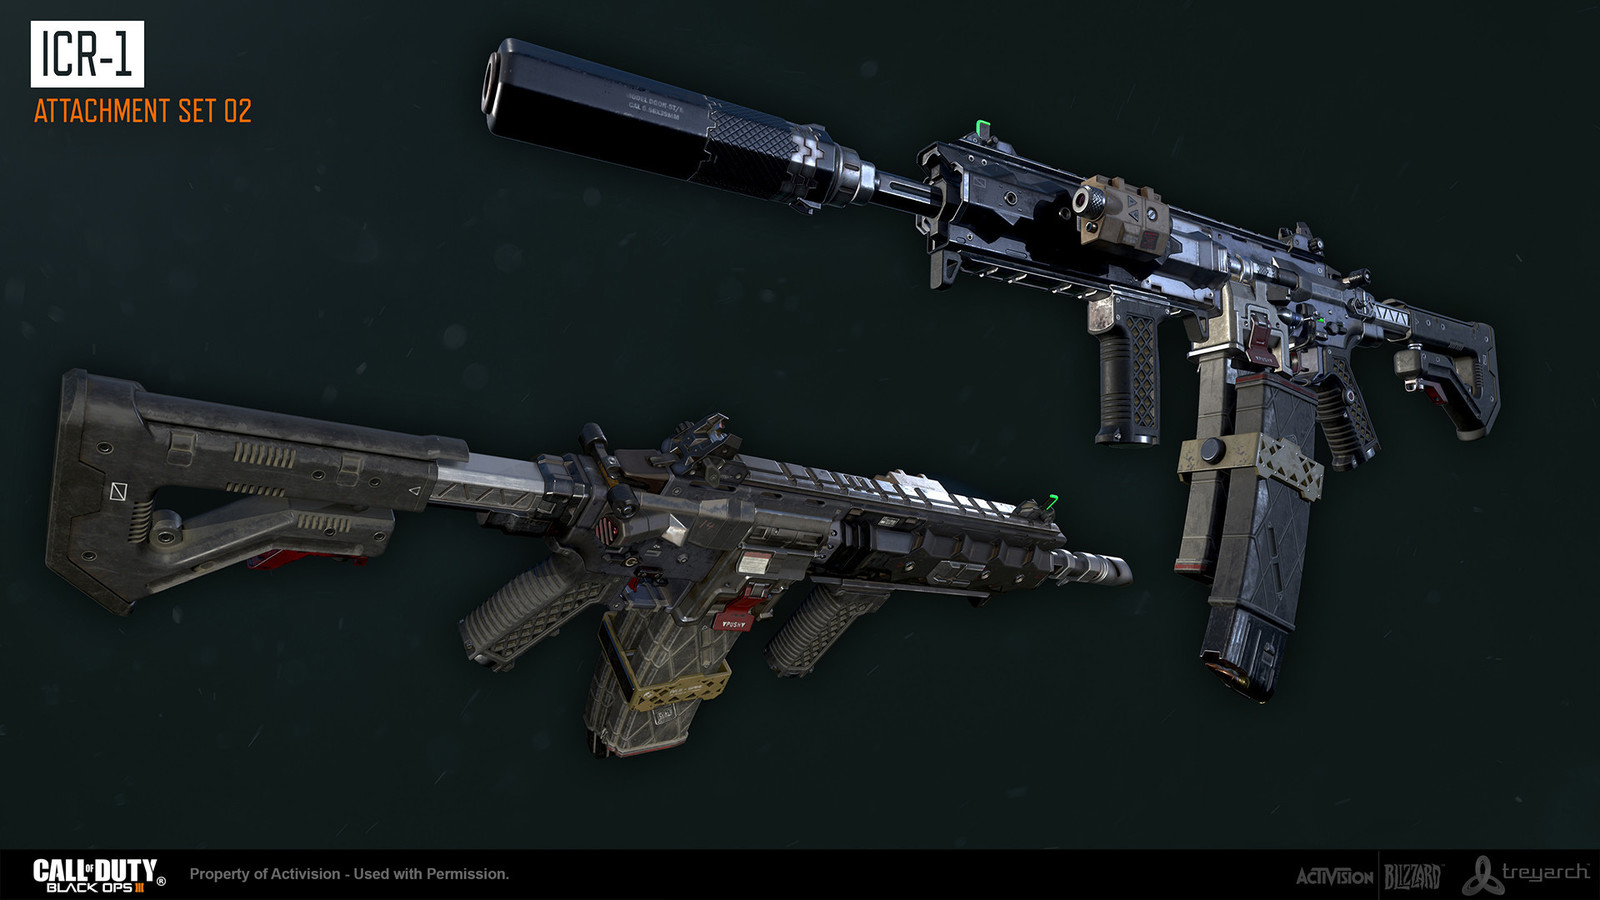 Additional modeling attachment support by Nathaniel Jorgenson. Base gun and textures by Ethan Hiley